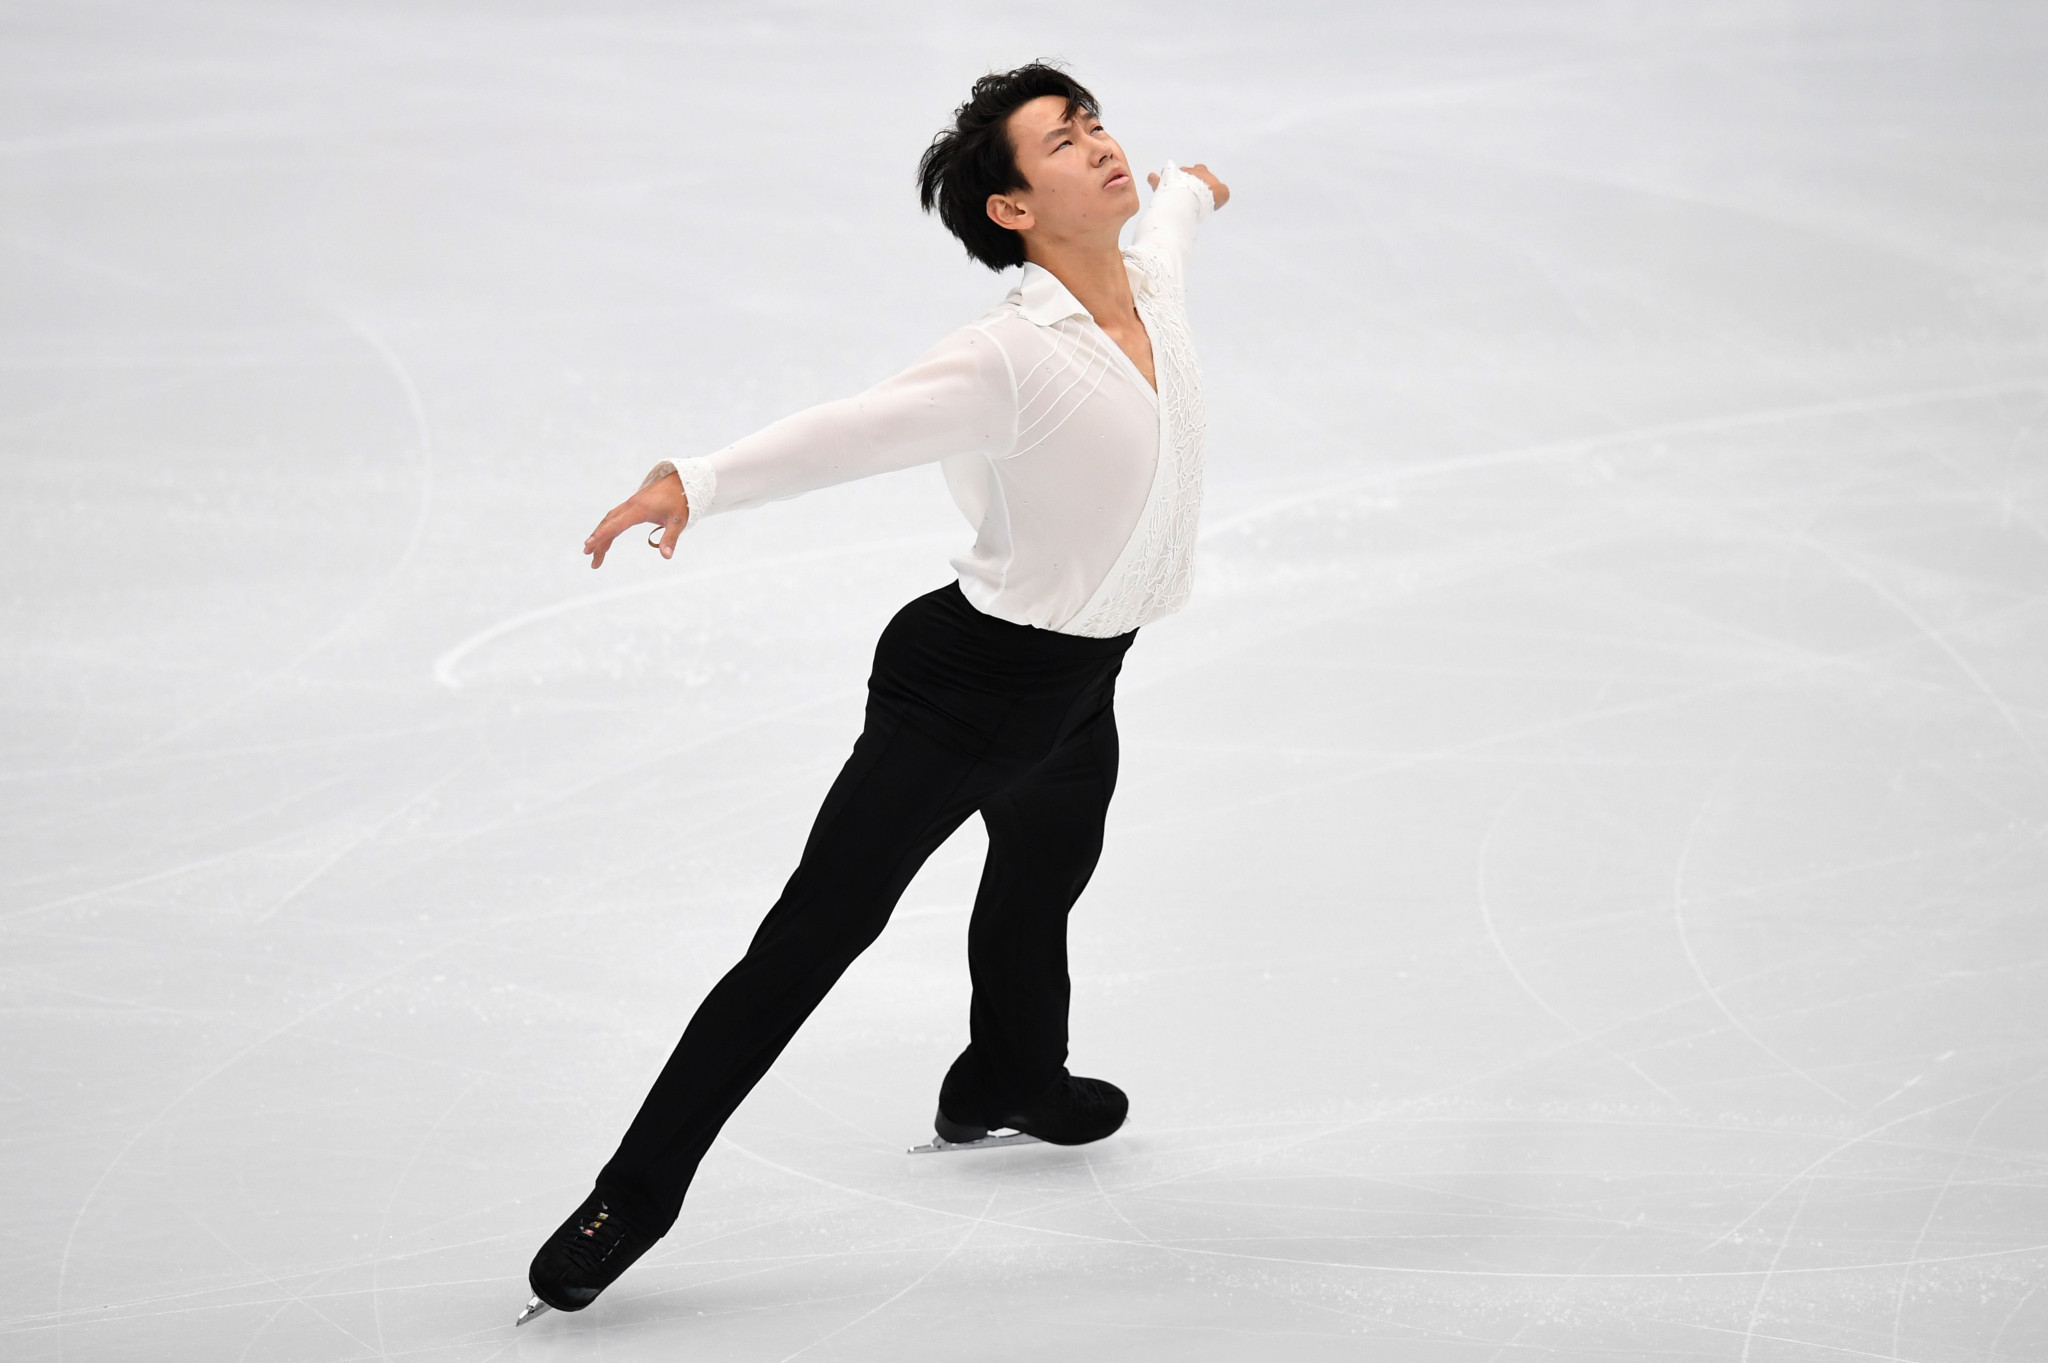 Denis Ten was stabbed to death in a knife attack in Almaty ©Getty Images